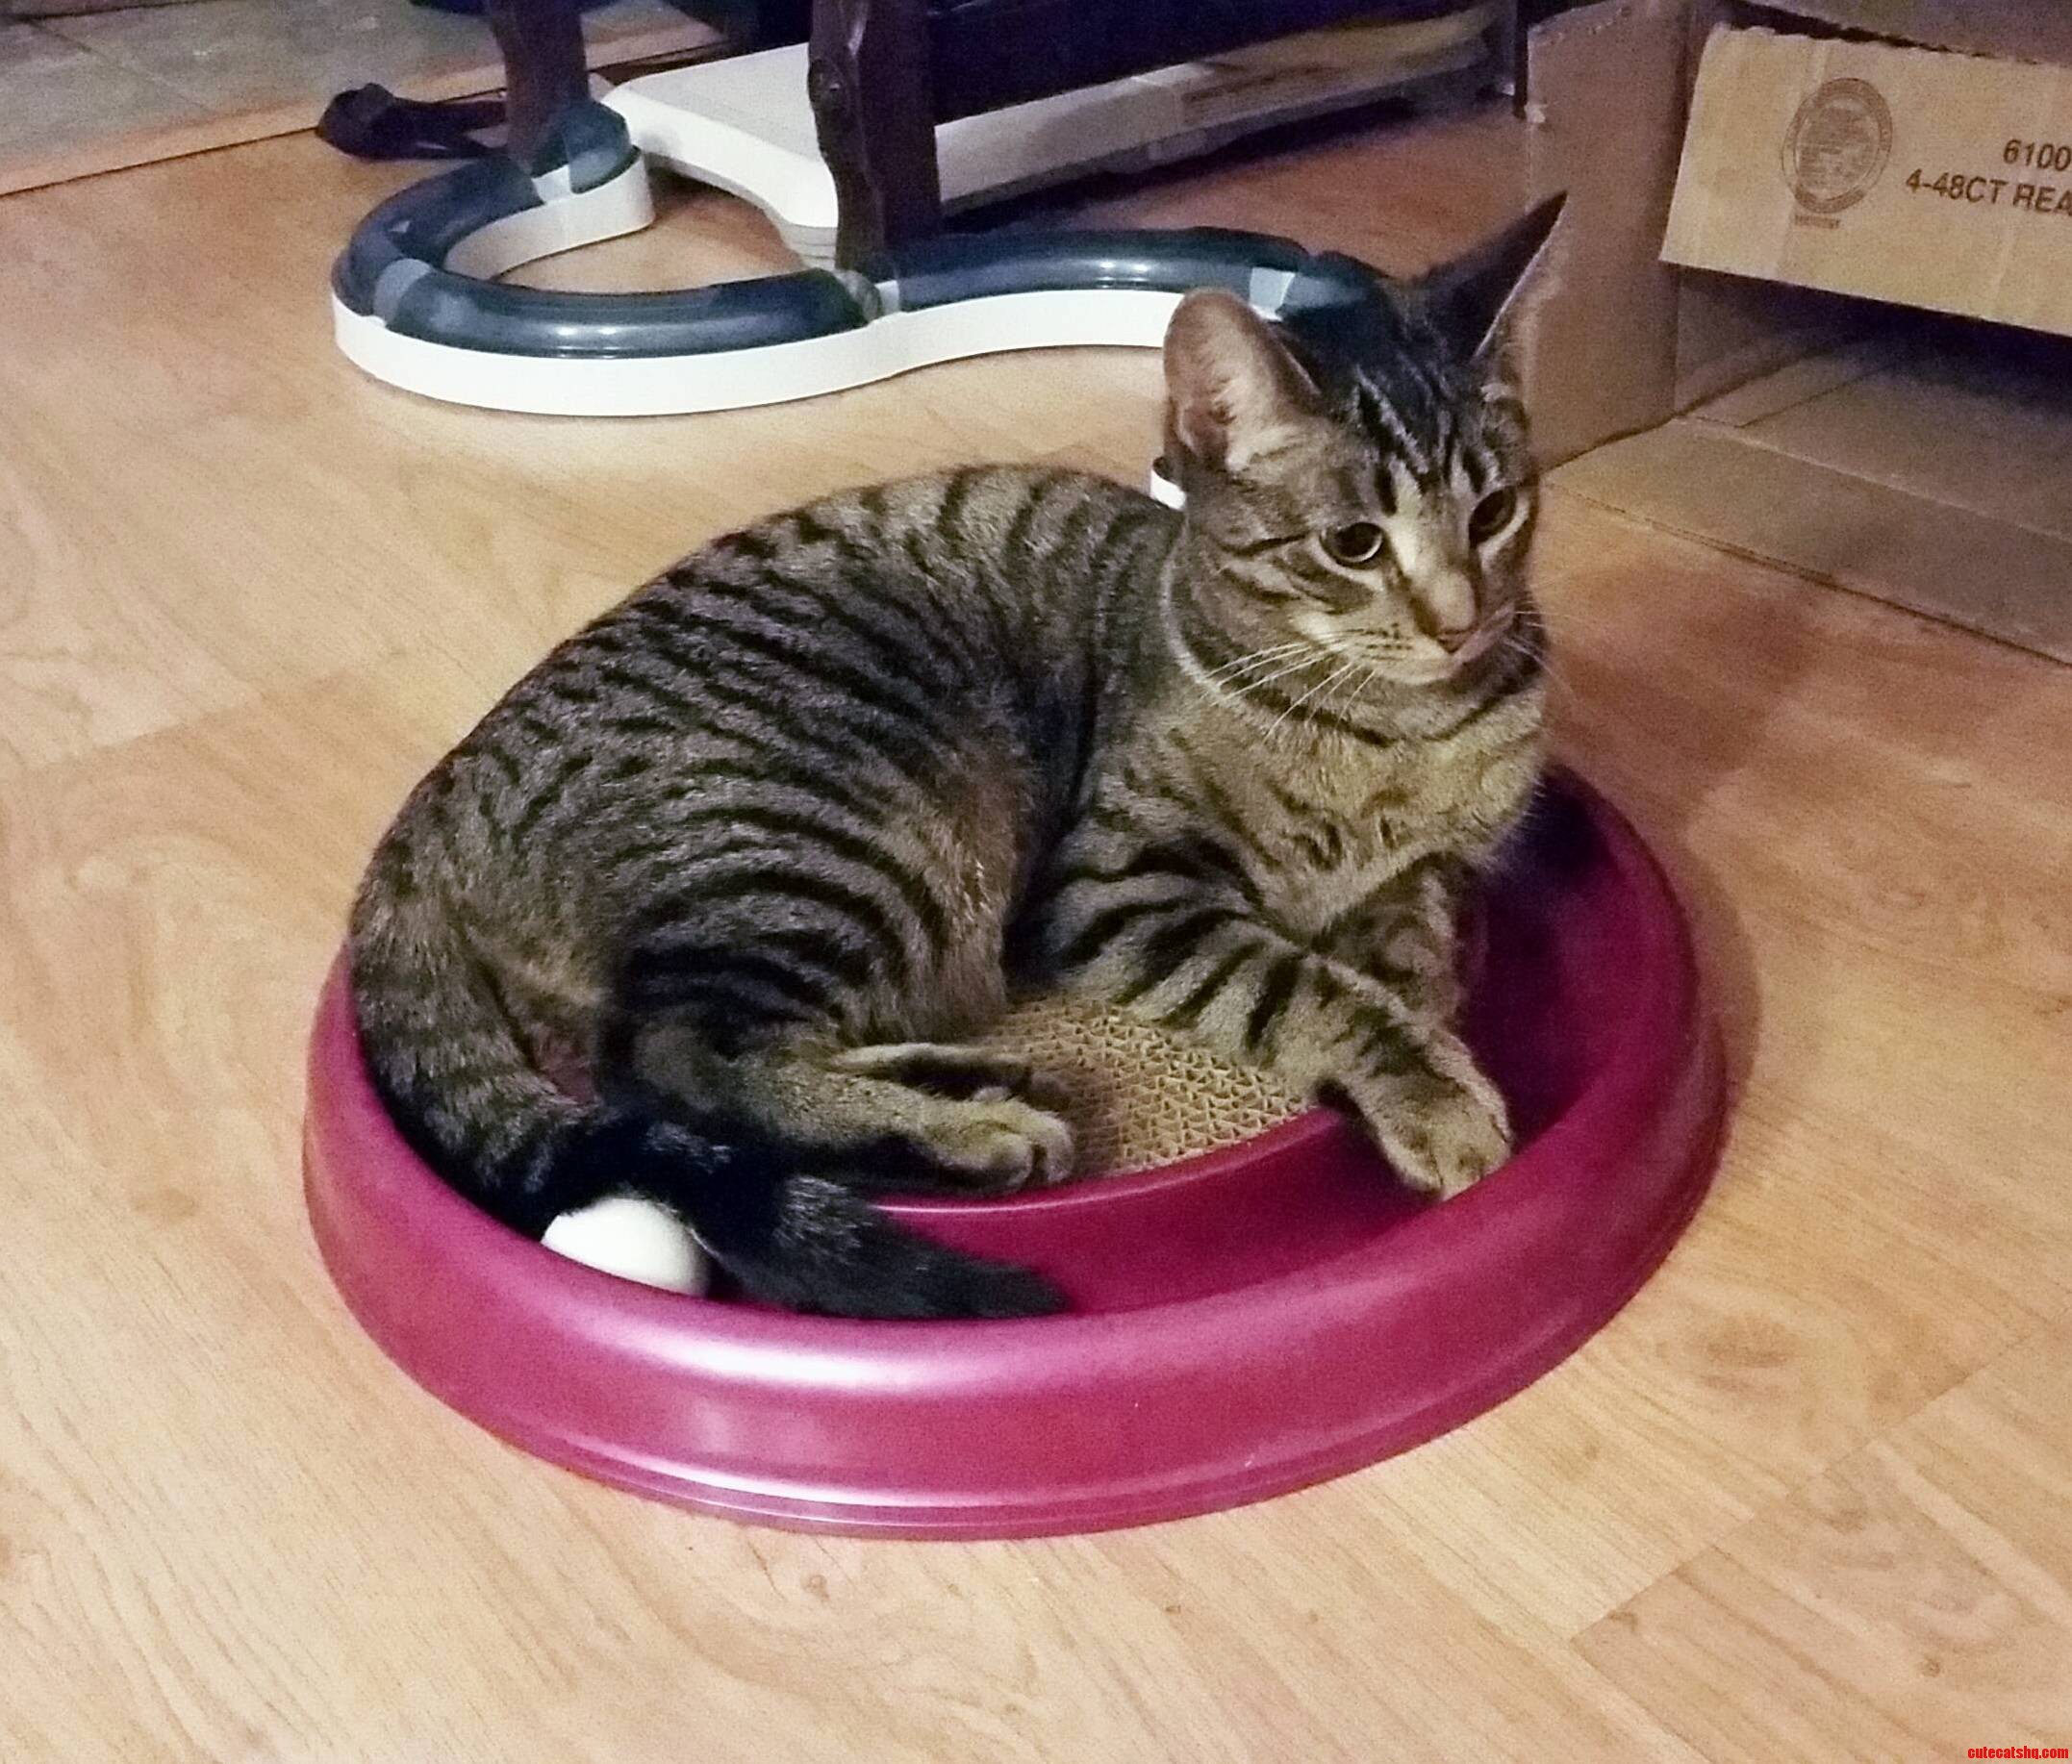 Sitting pretty on her toy.